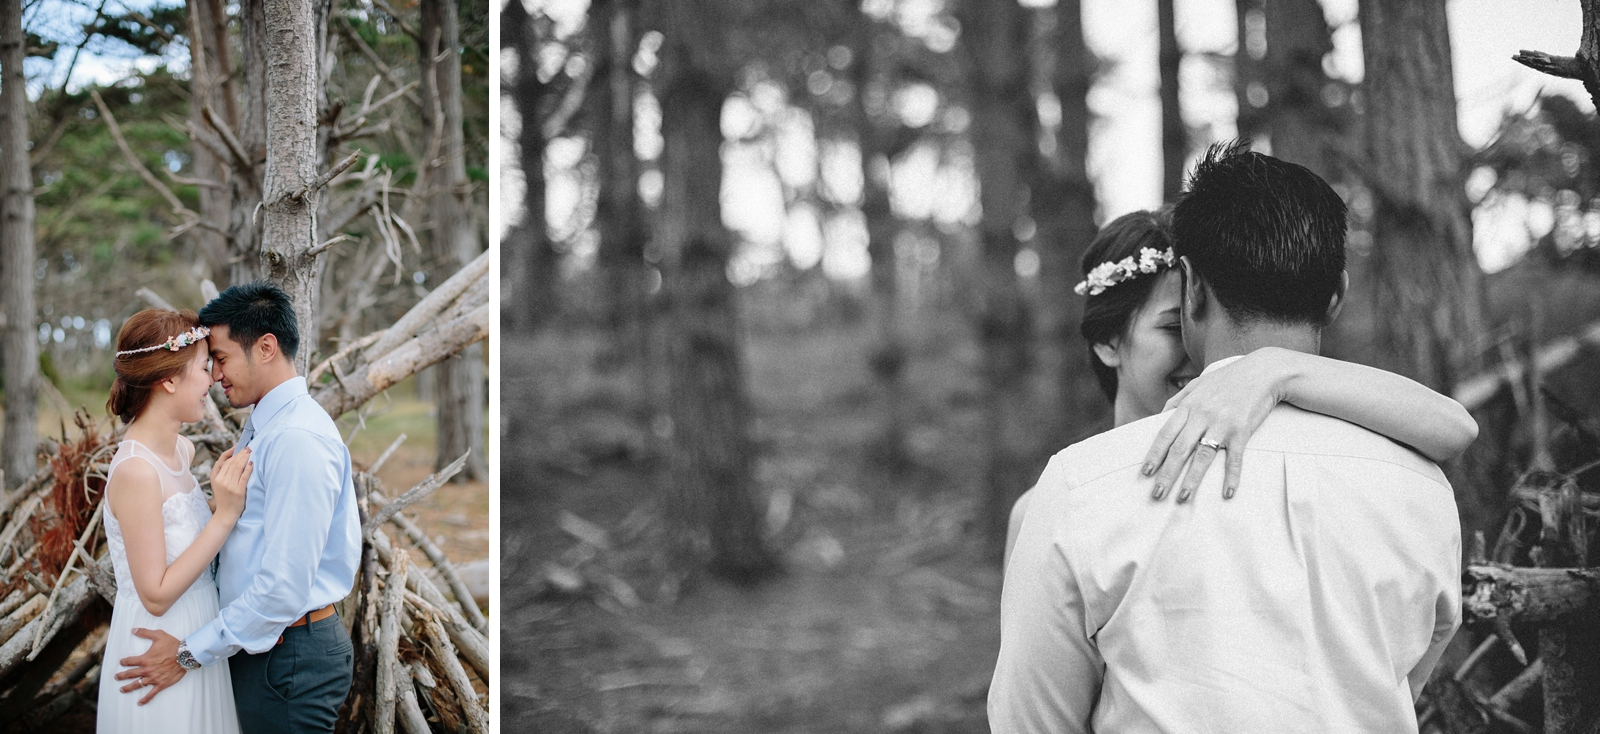 Ram and Gia / Auckland Elopement Photographer / © Patty Lagera Photography